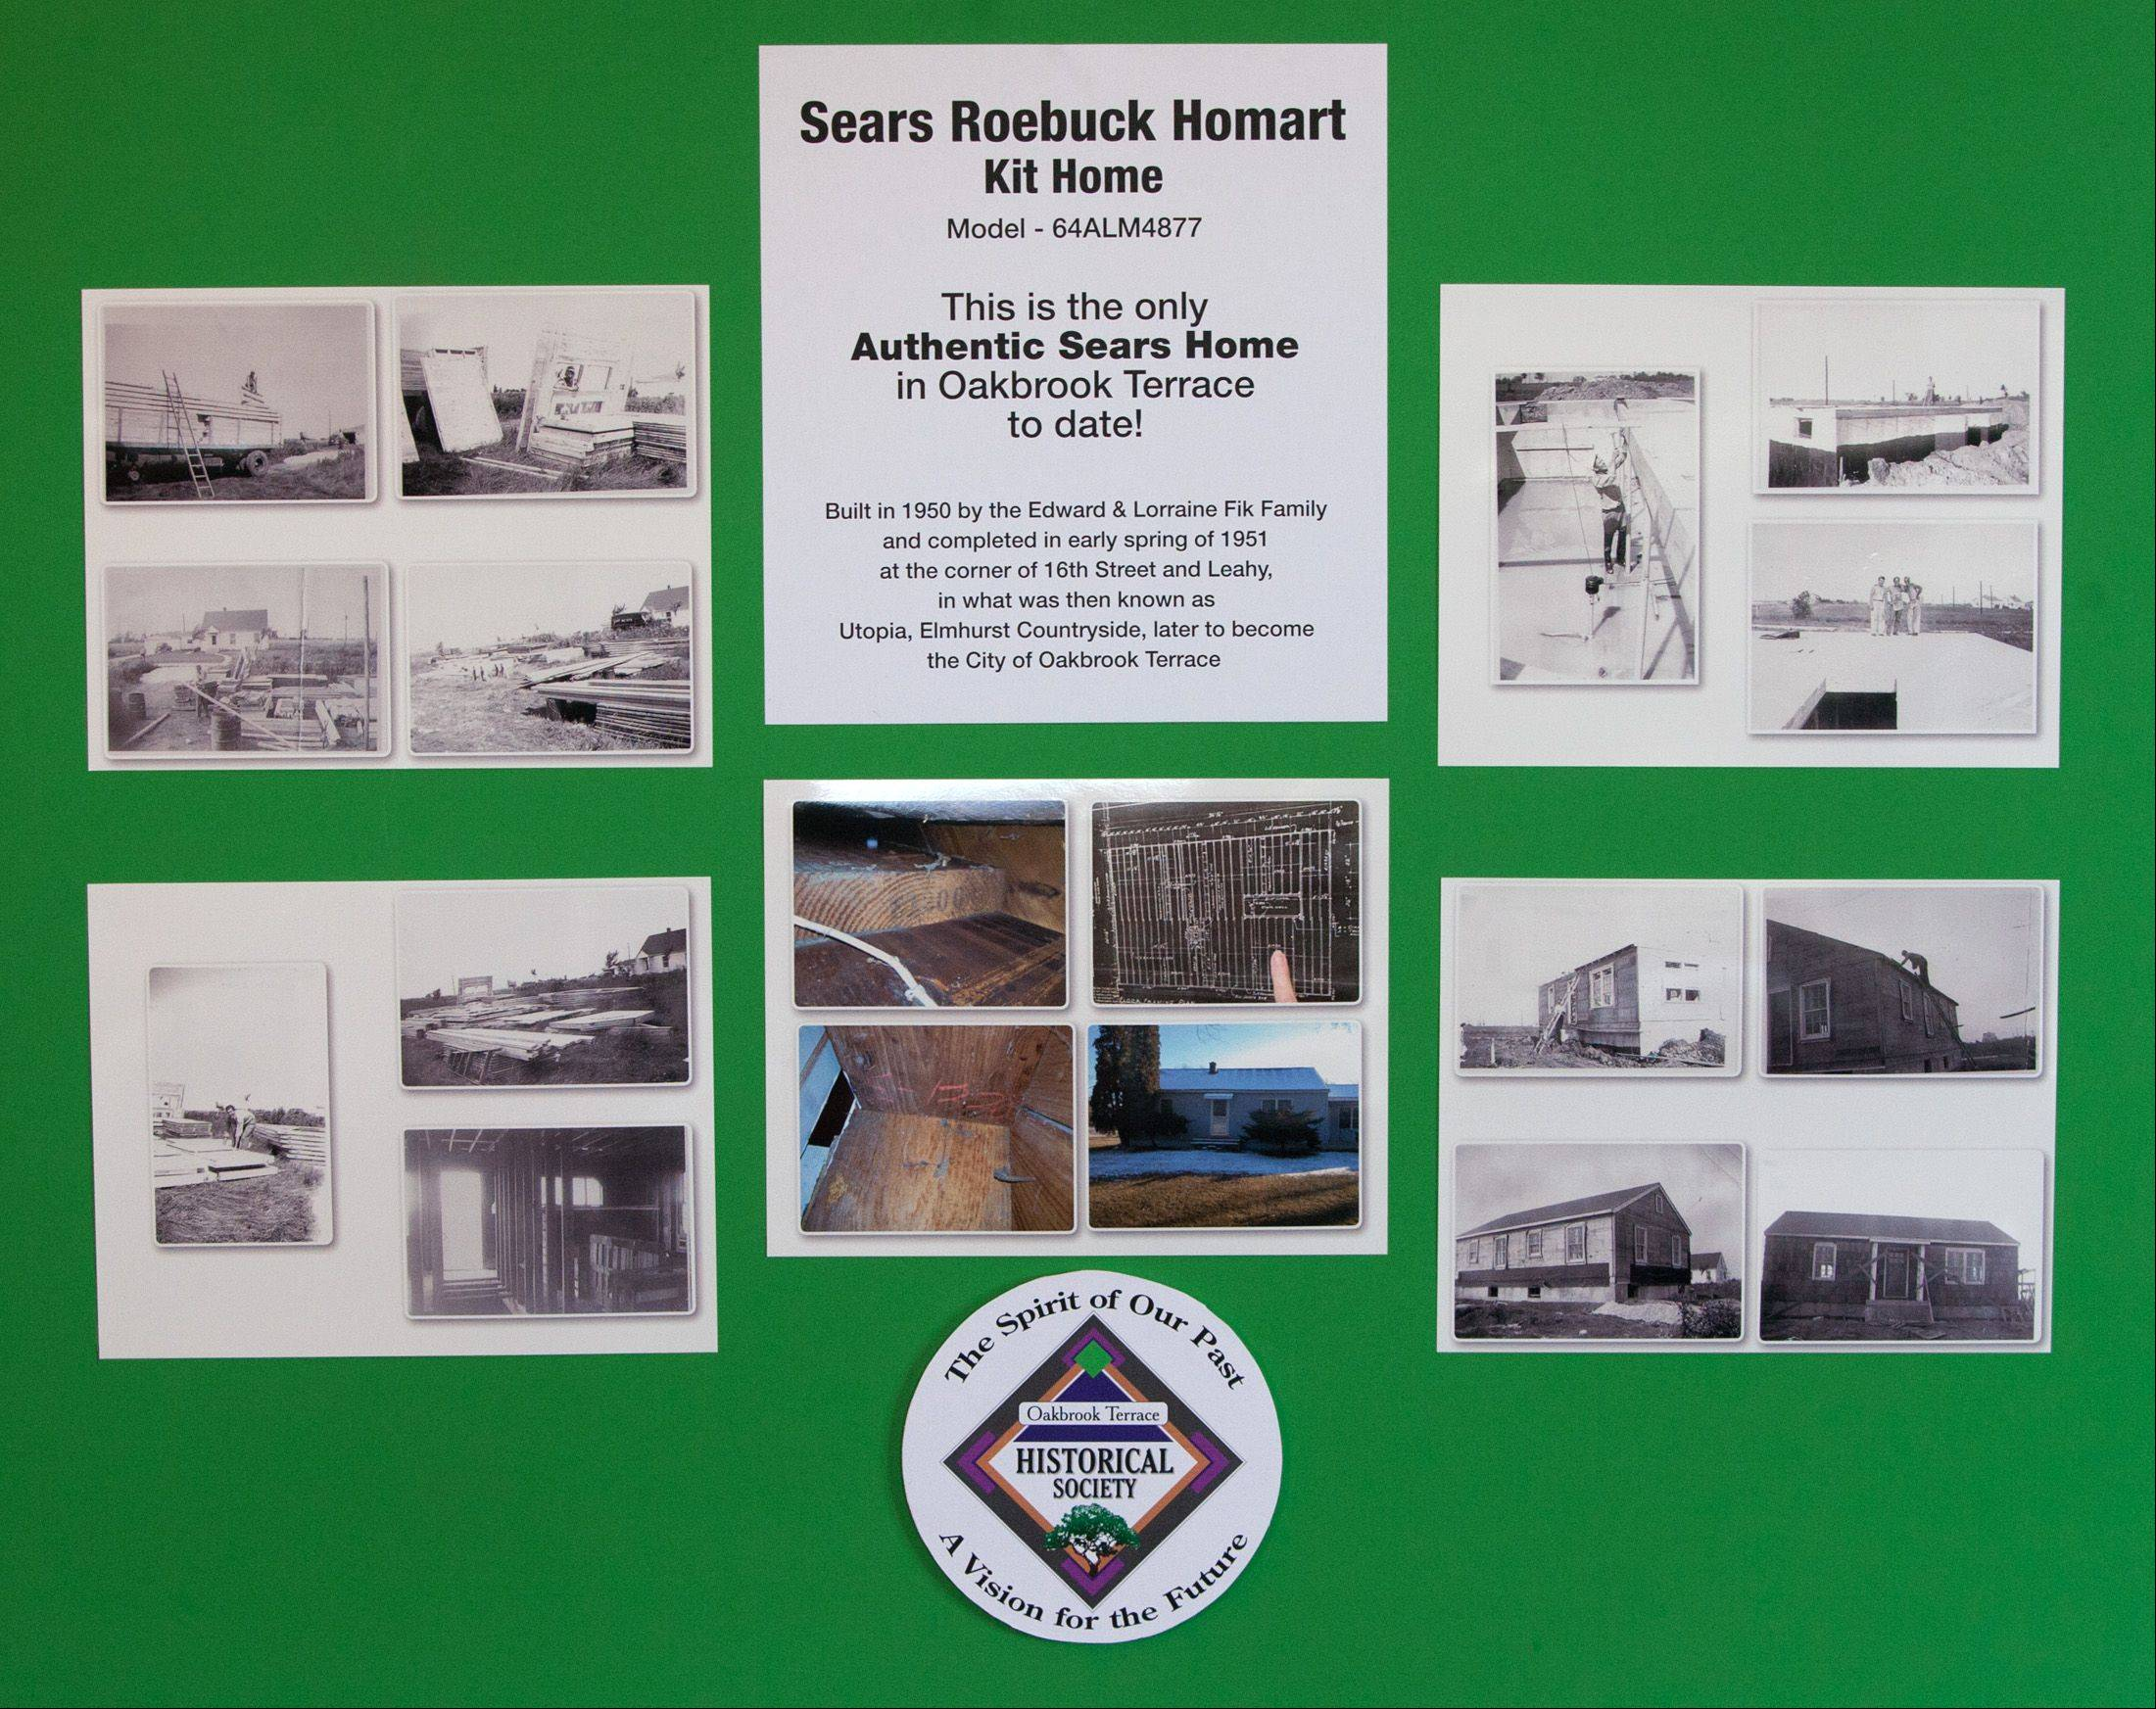 This poster board shows a Sears Roebuck Homart kit home being delivered and built in Oakbrook Terrace.